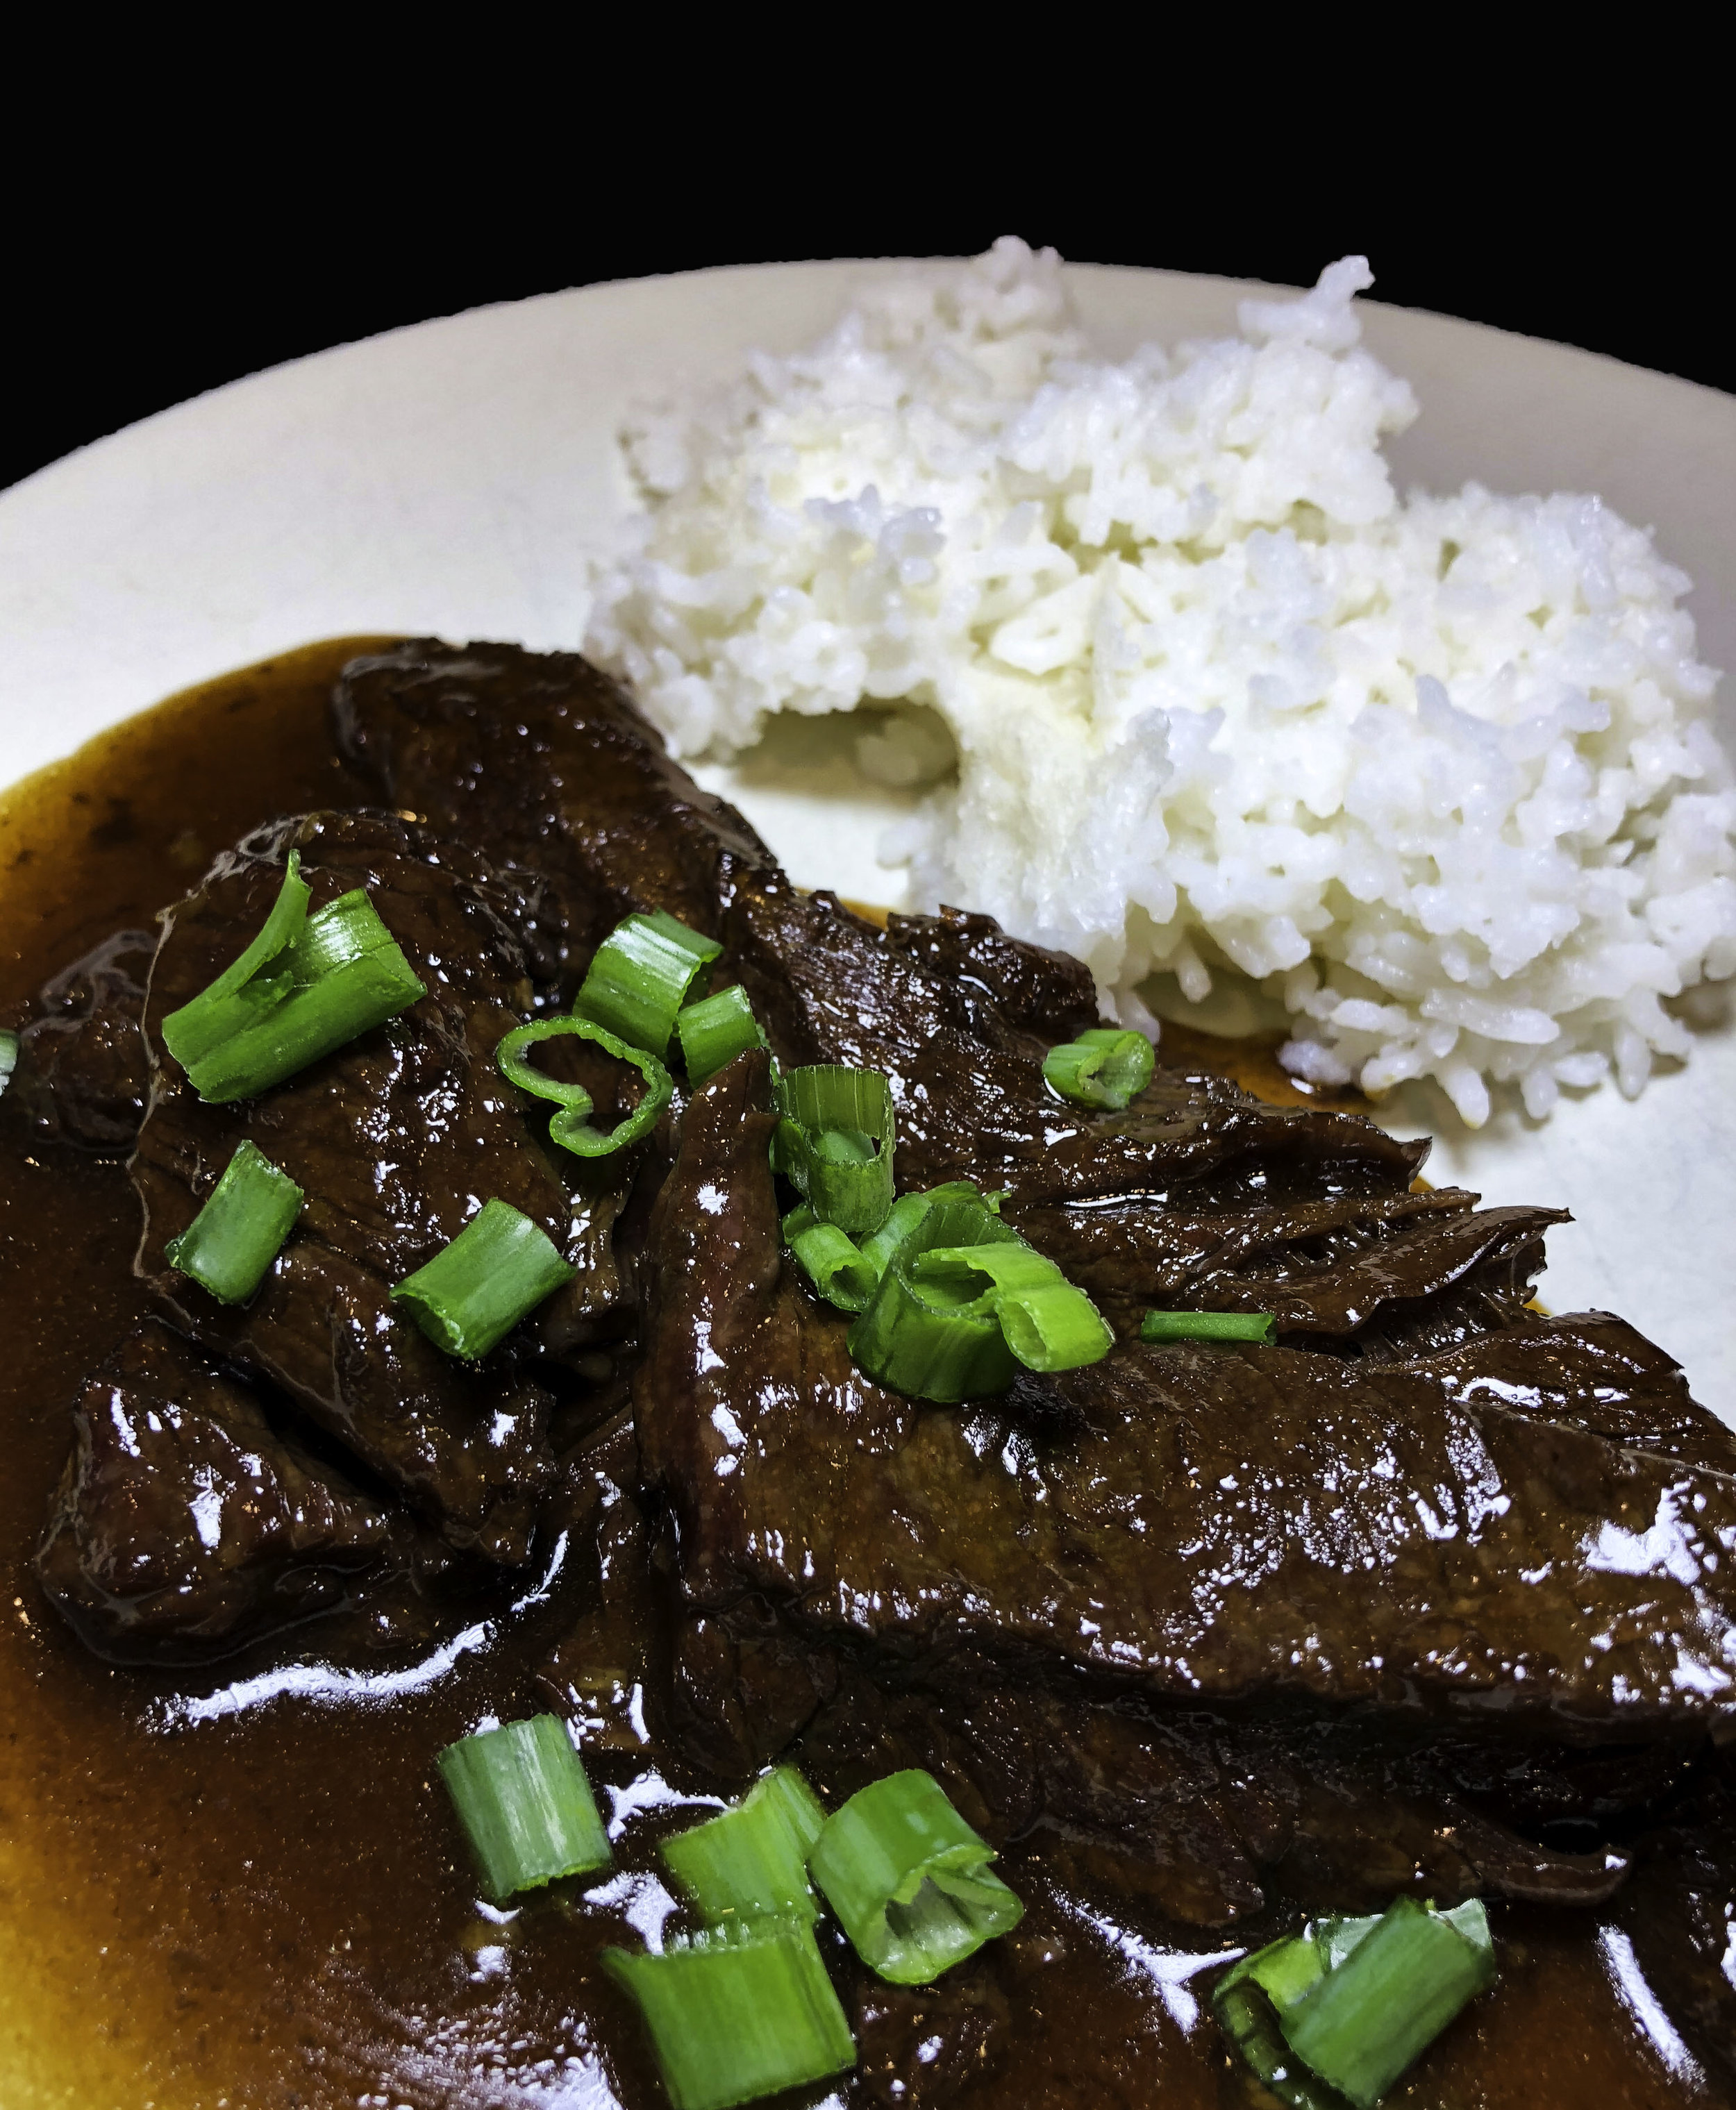 https://fashionablefoodieny.com/recipes/2018/1/21/instant-pot-mongolian-beef